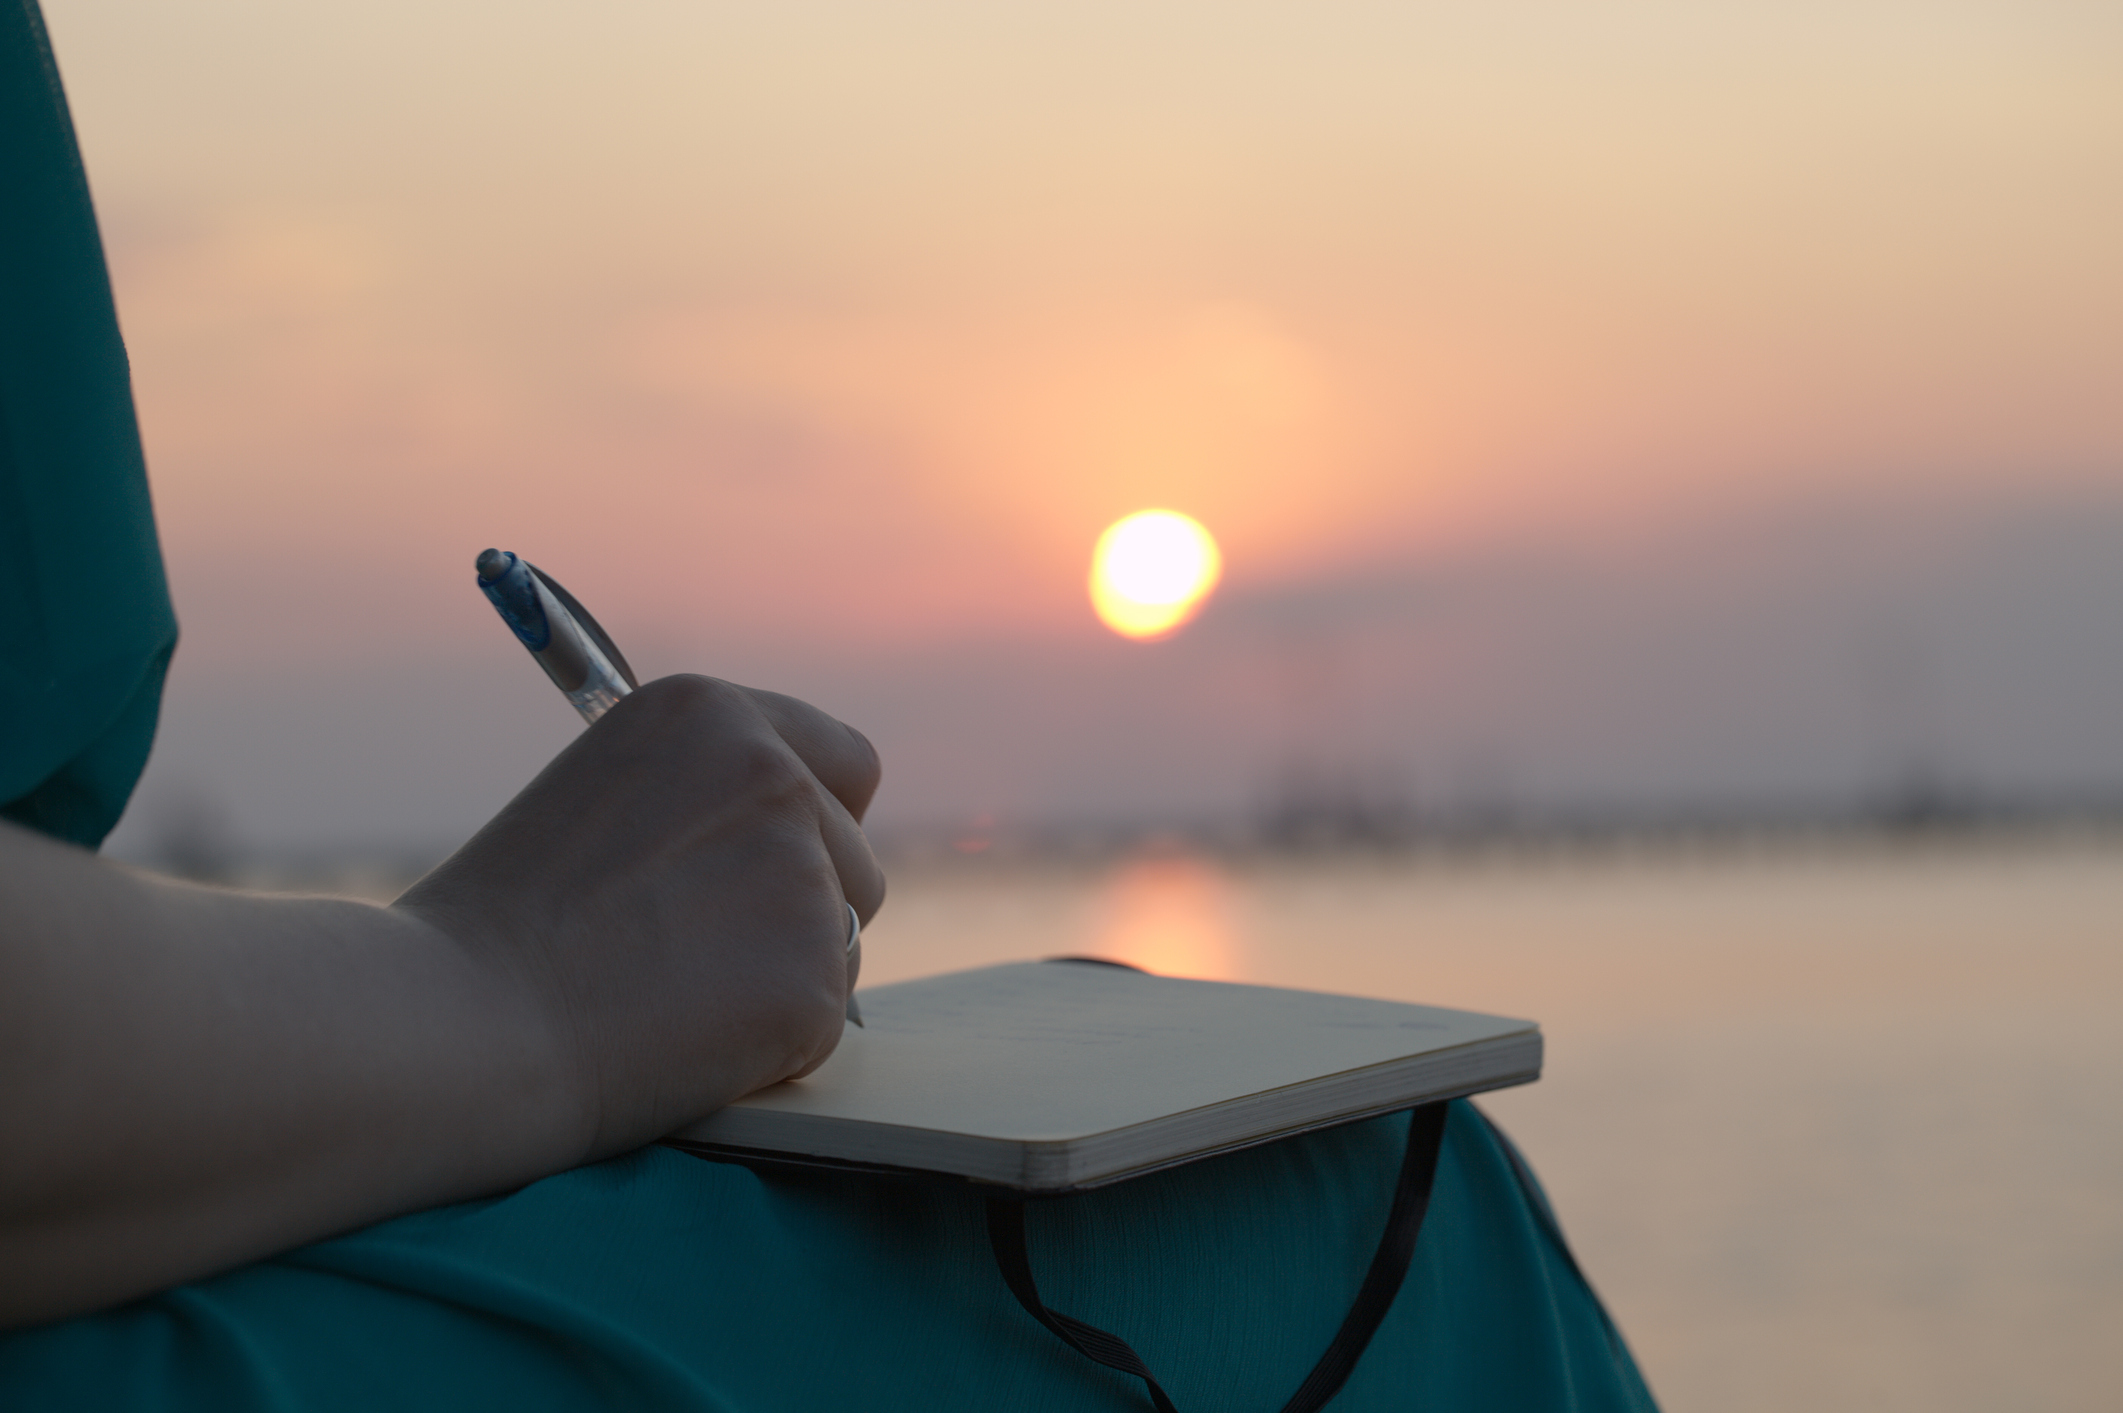 The Strategies That Helped Me Write 3 Books in 3 Years